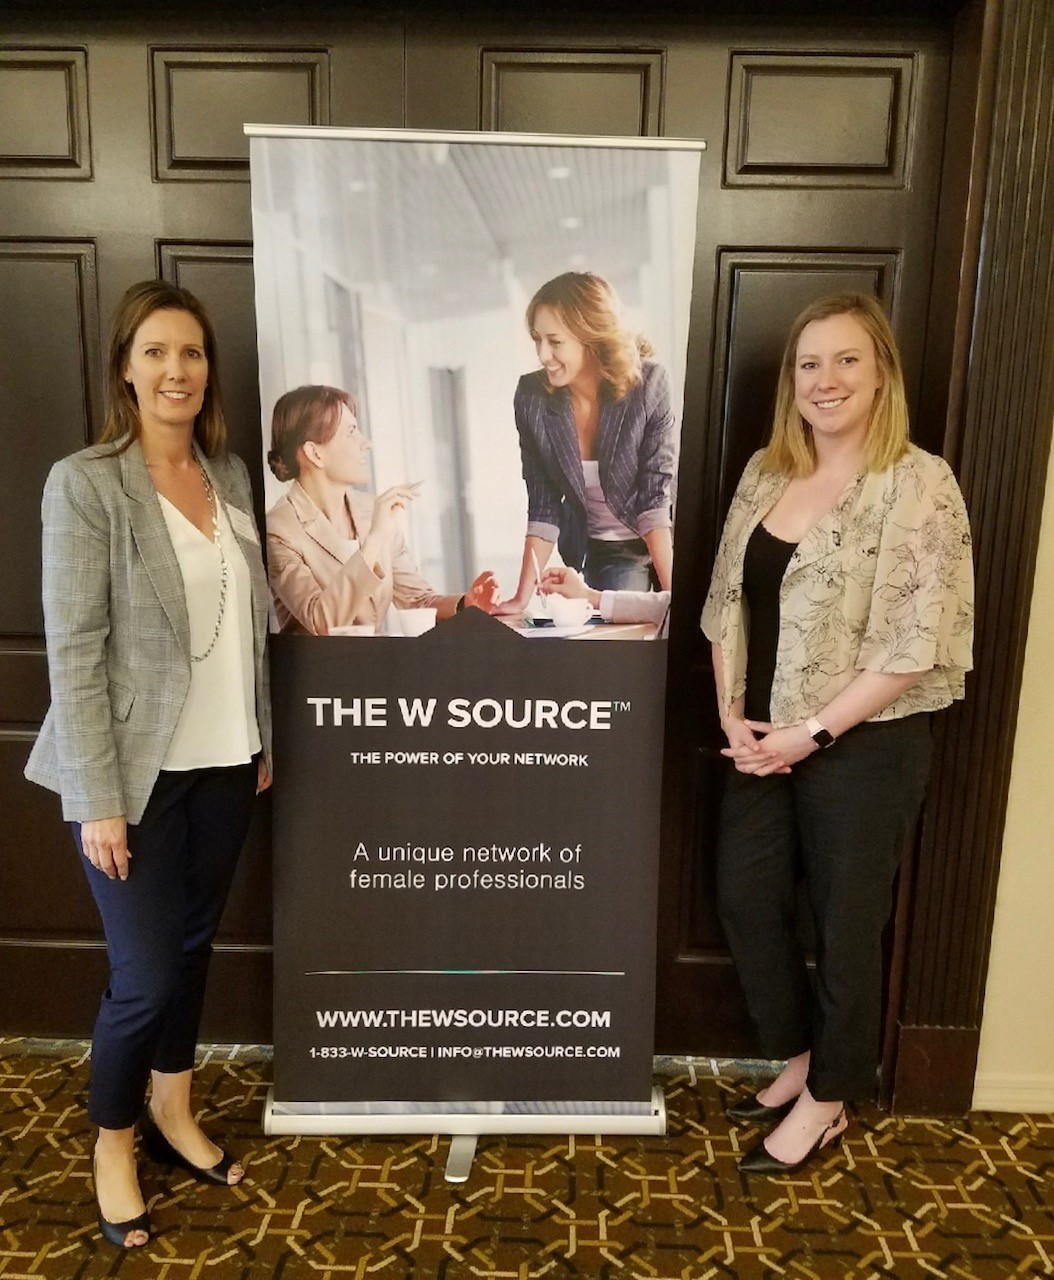 Scottsdale/Arcadia Co-Chapter Head Vickie Garcia (left) and cofounder of The W Source™ Hannah Buschbom (right).